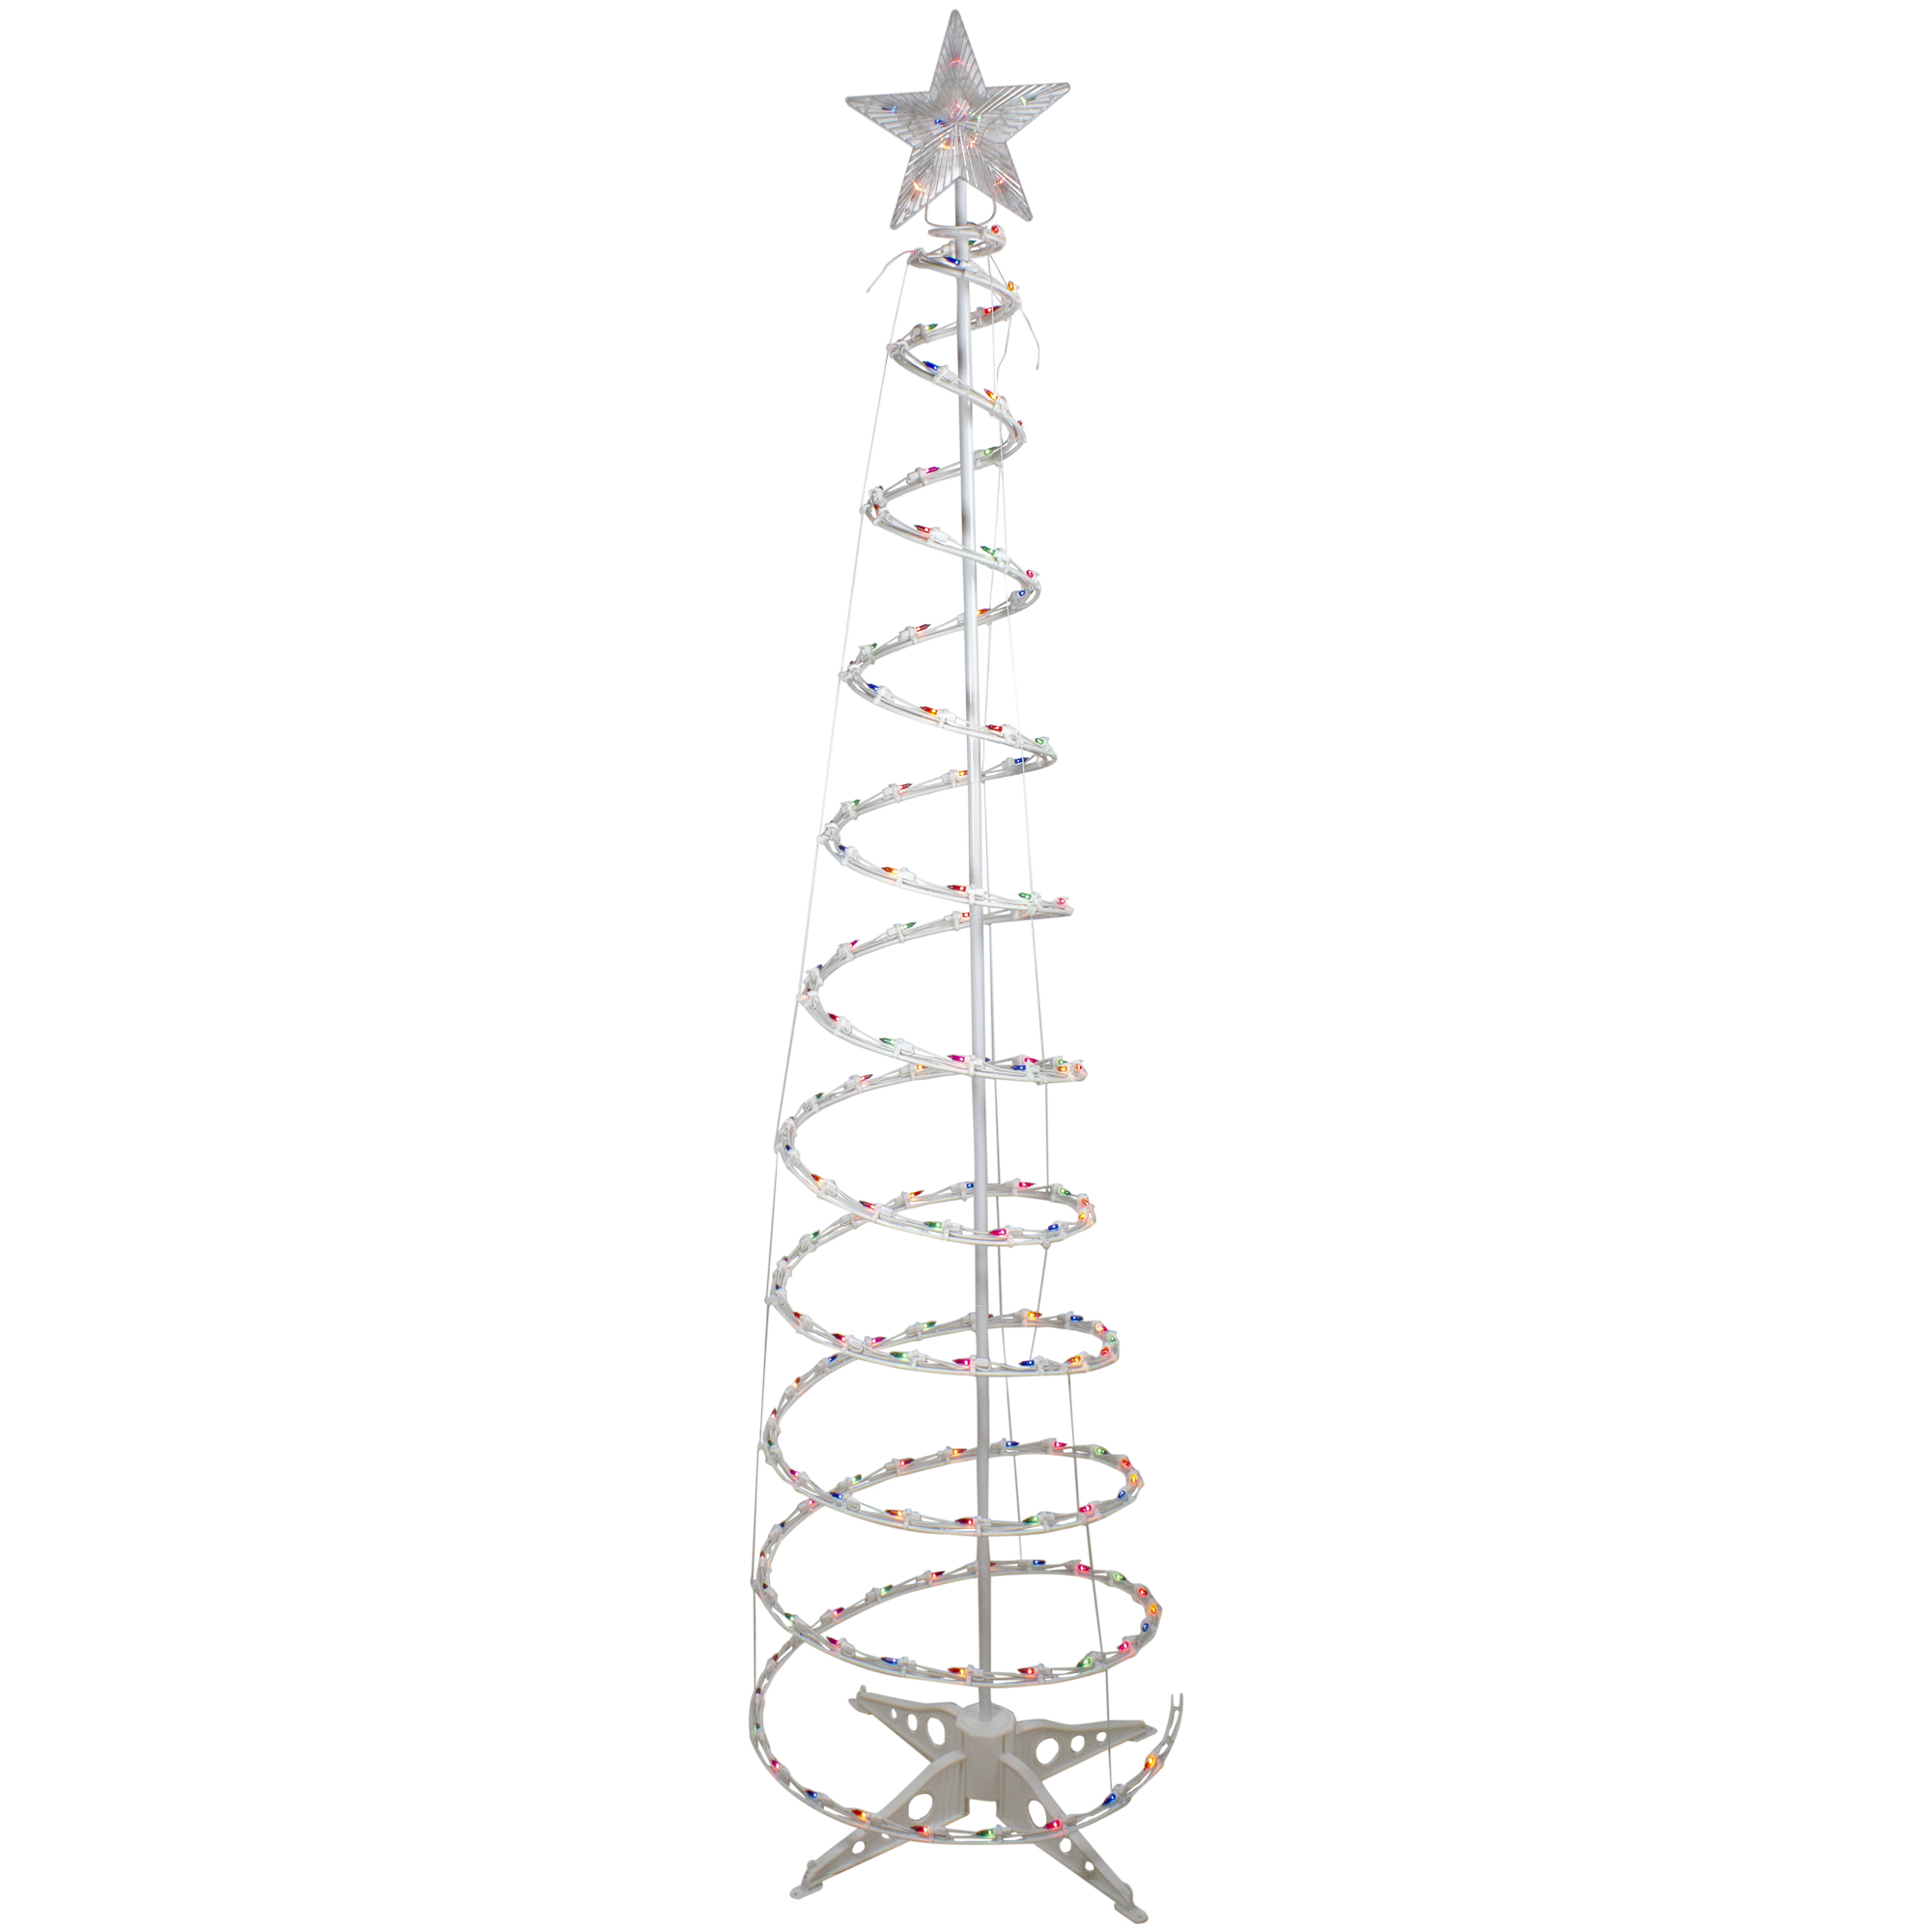 6ft Pre Lit Spiral Christmas Tree With Star Tree Topper Multi Color Lights Ebay